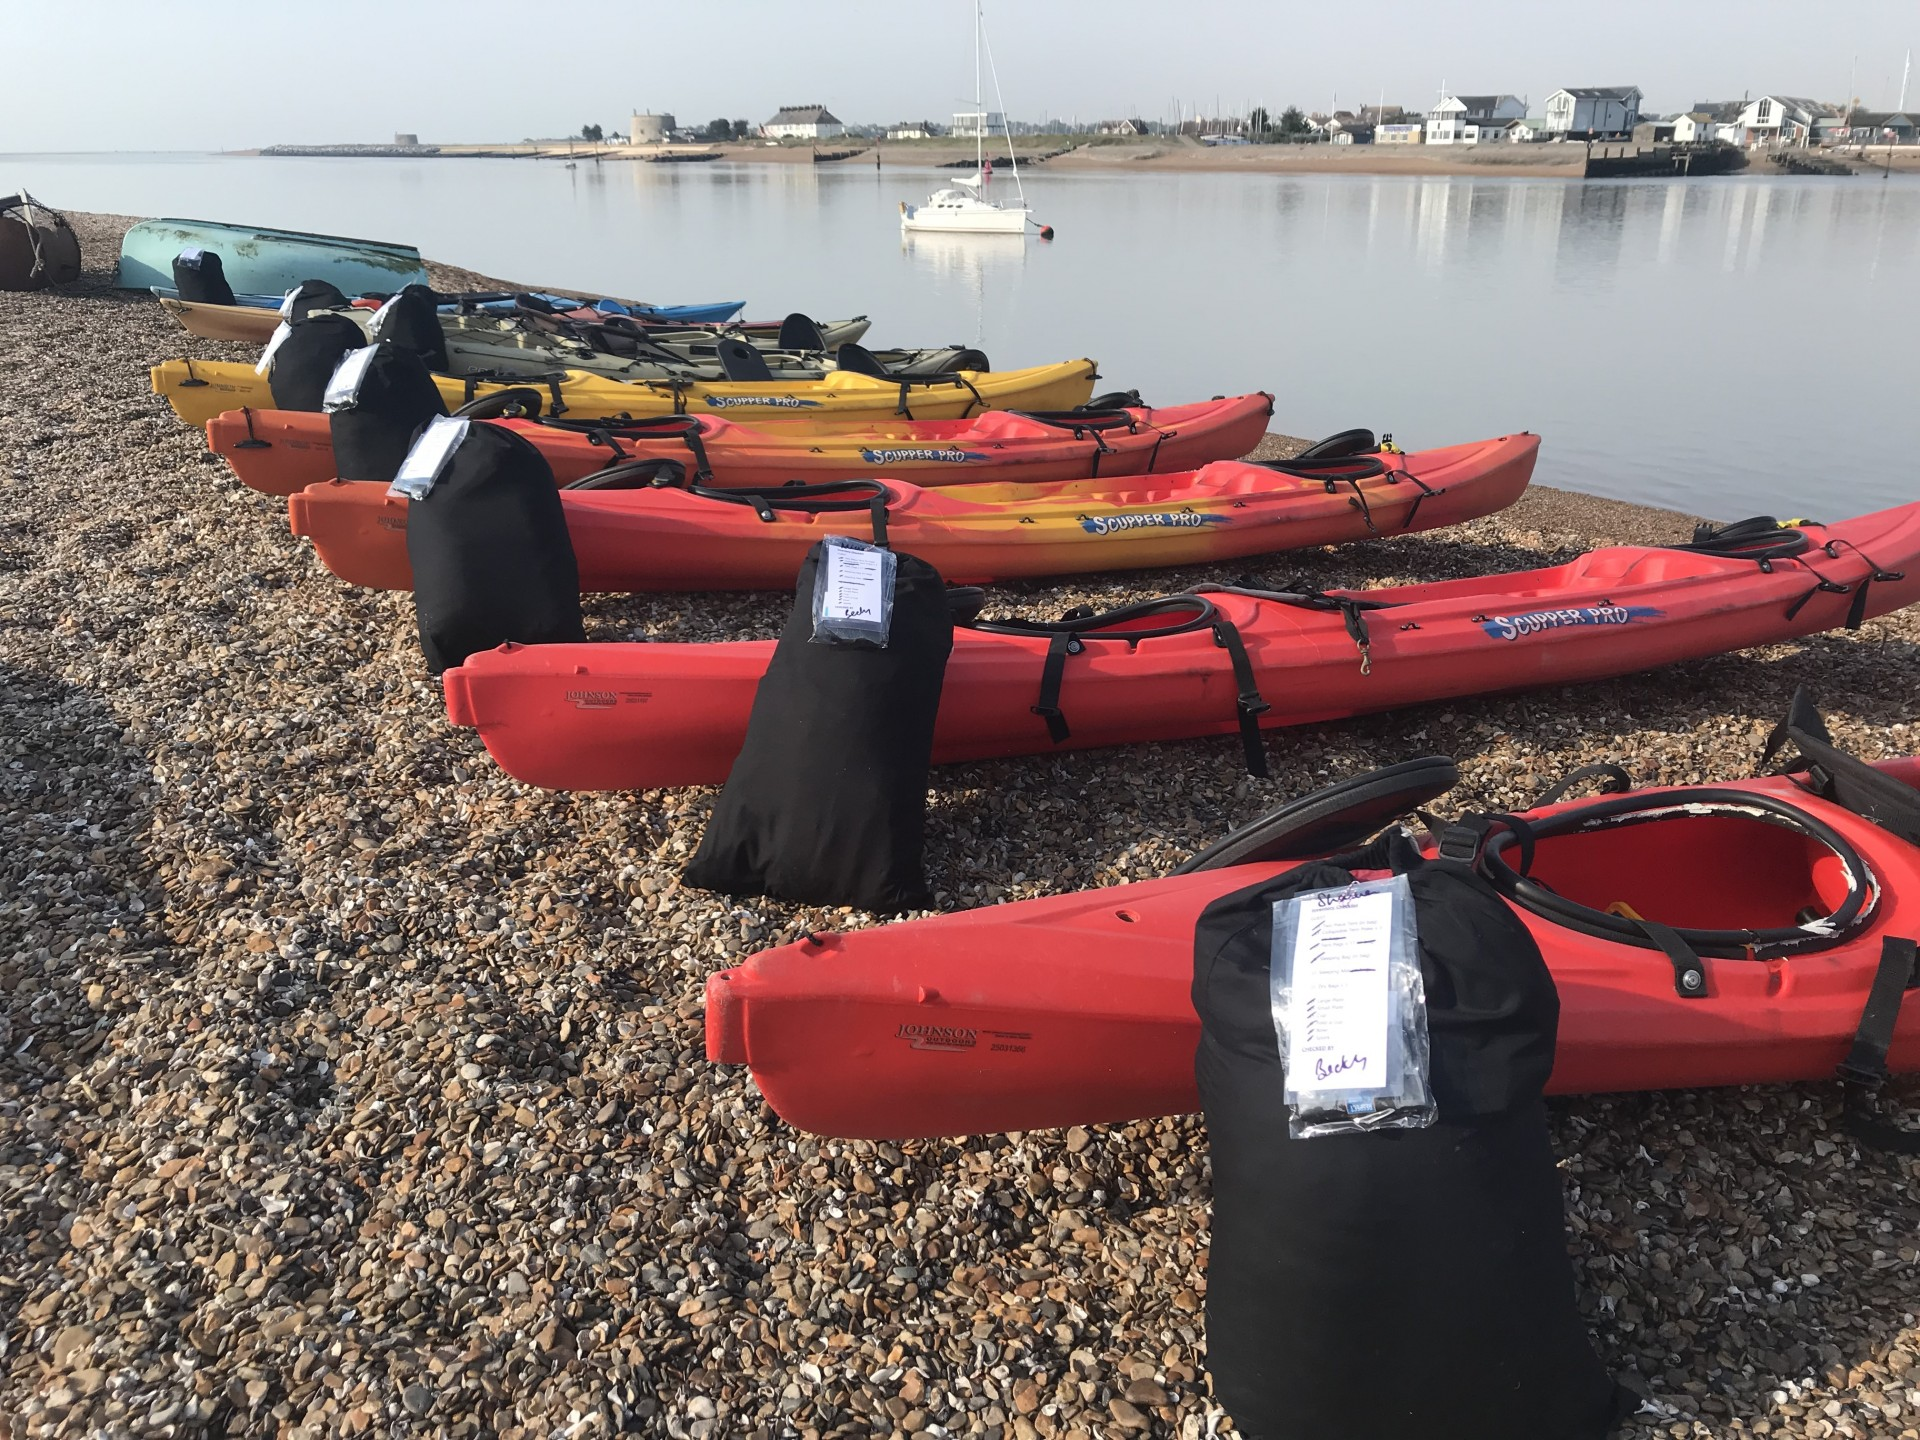 All inclusive wild camping events with kayaks lined up with bags of equipment for each guest